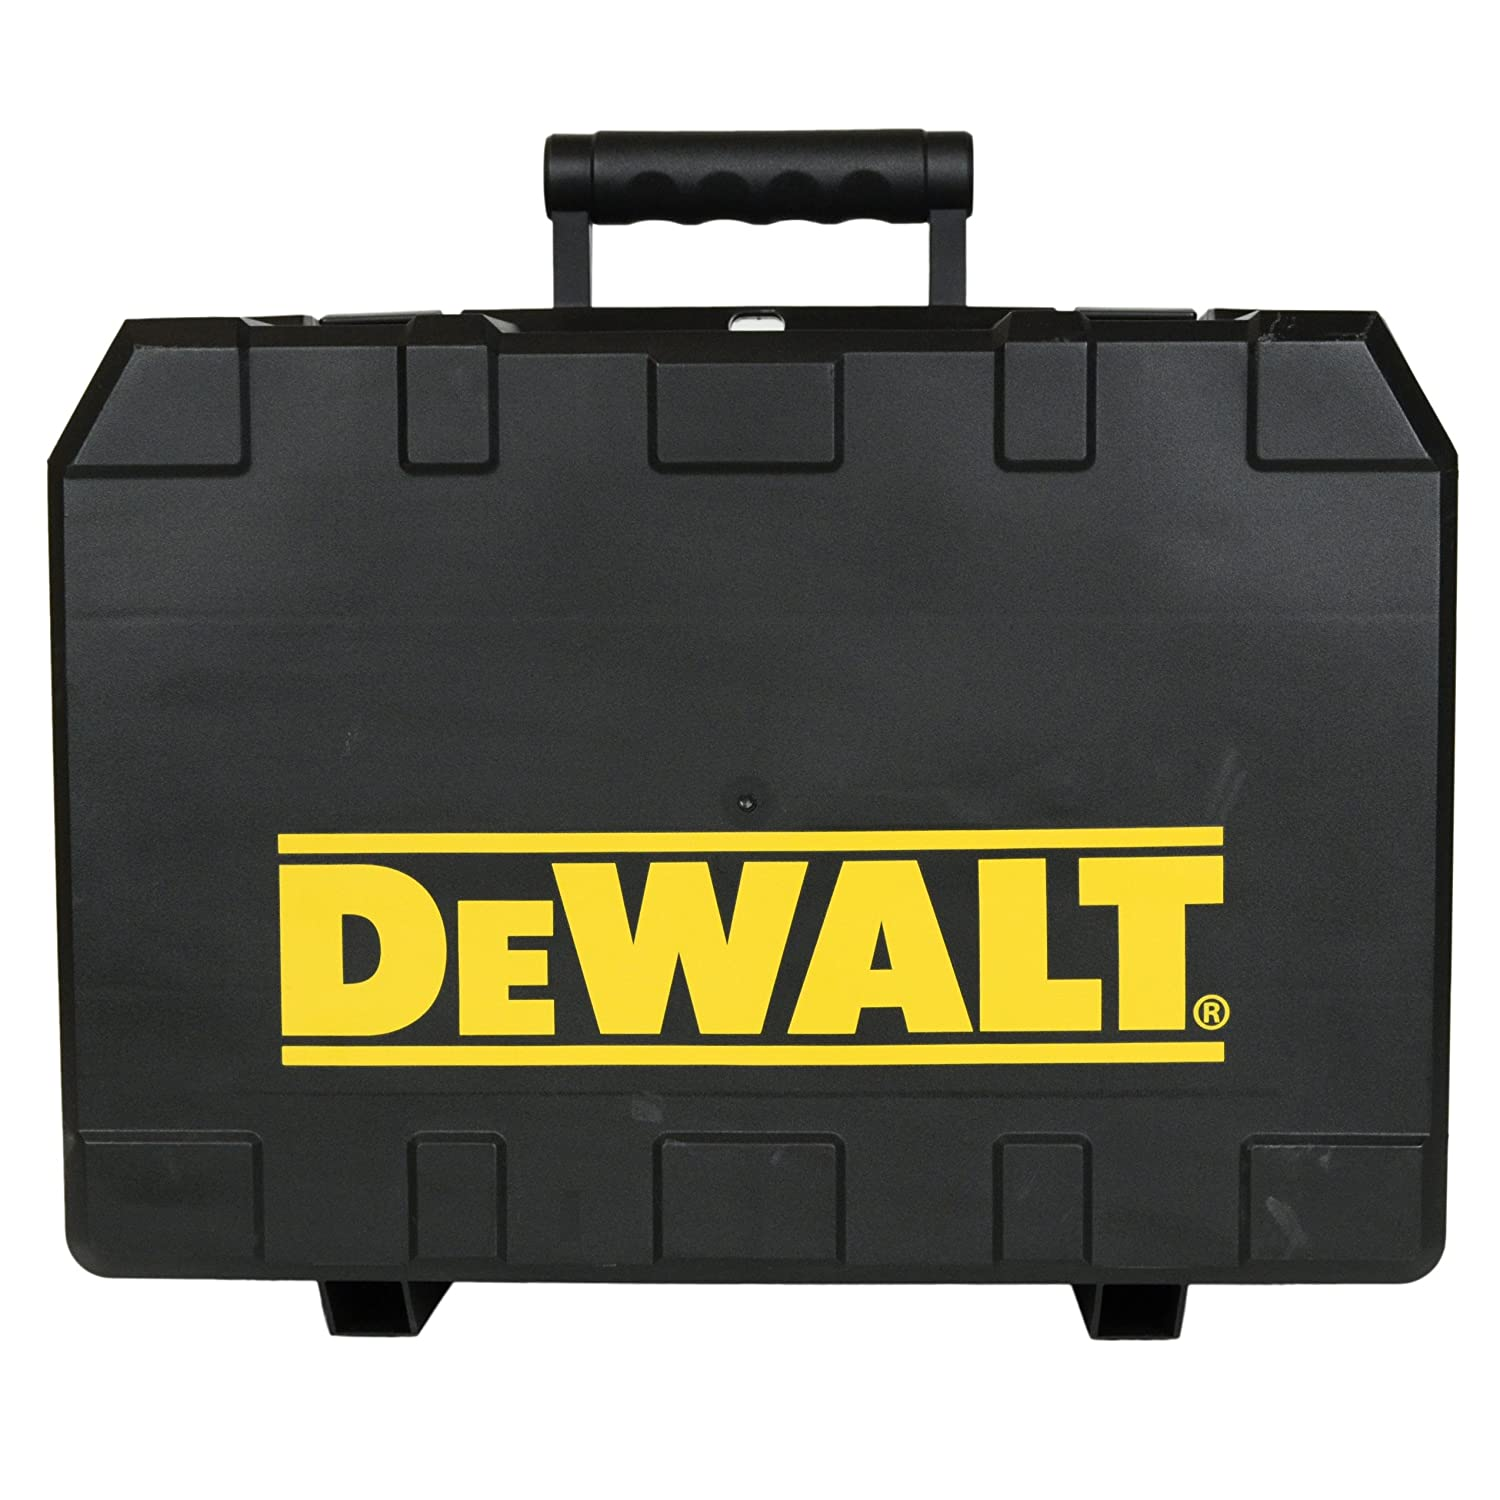 Dewalt Hard Circular Saw Tool Case for DCS373 DCS392 DCS372 DC390 DW936